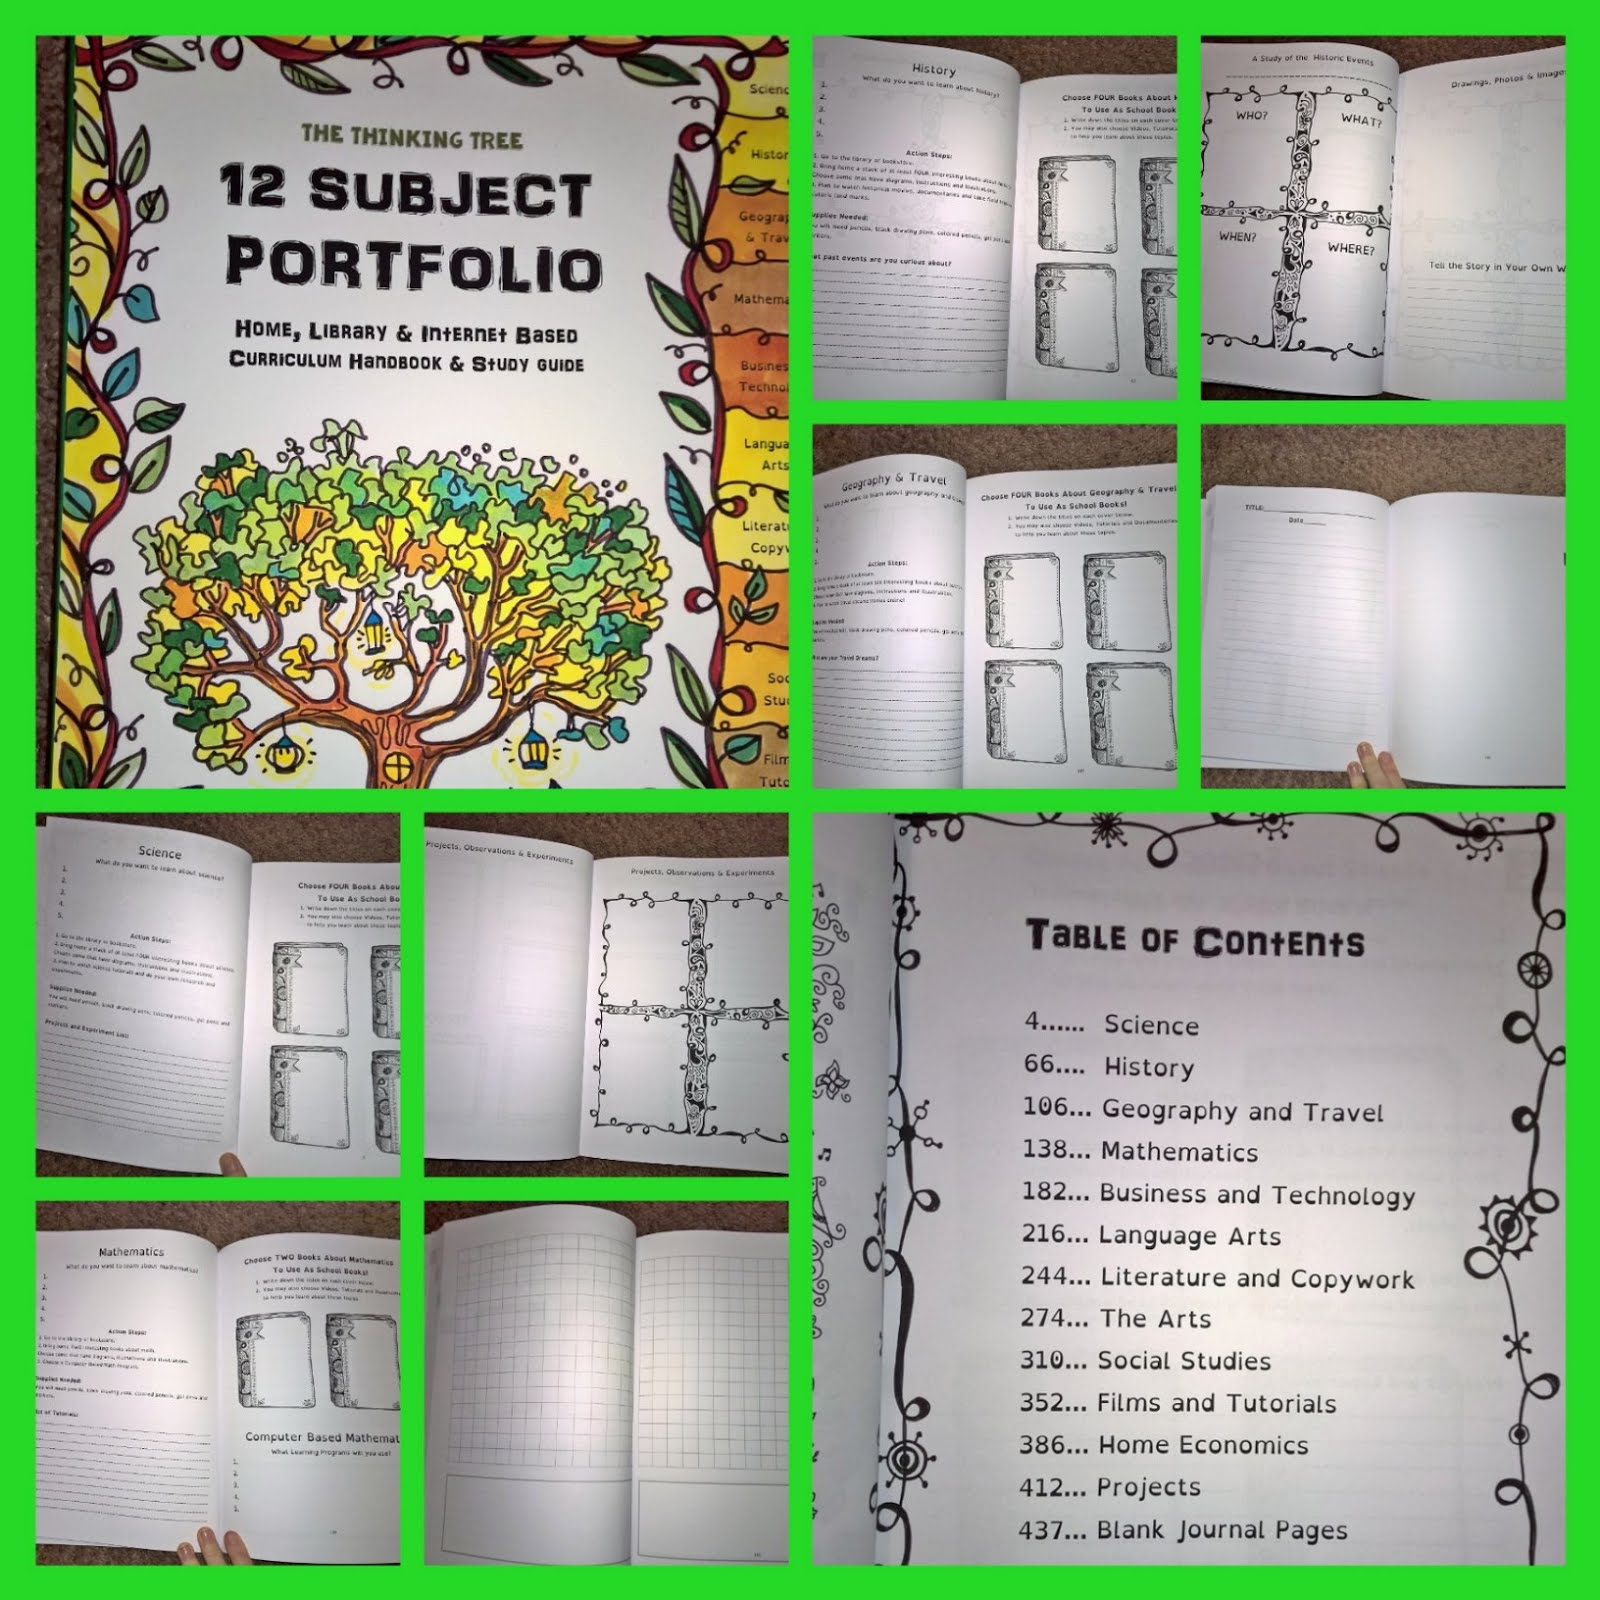 Its a good full journals and books from the thinking tree sample ages 3 to 7 fun schooling journal do it yourself homeschooling for beginners homeschool prep book for new readers and non readers solutioingenieria Images